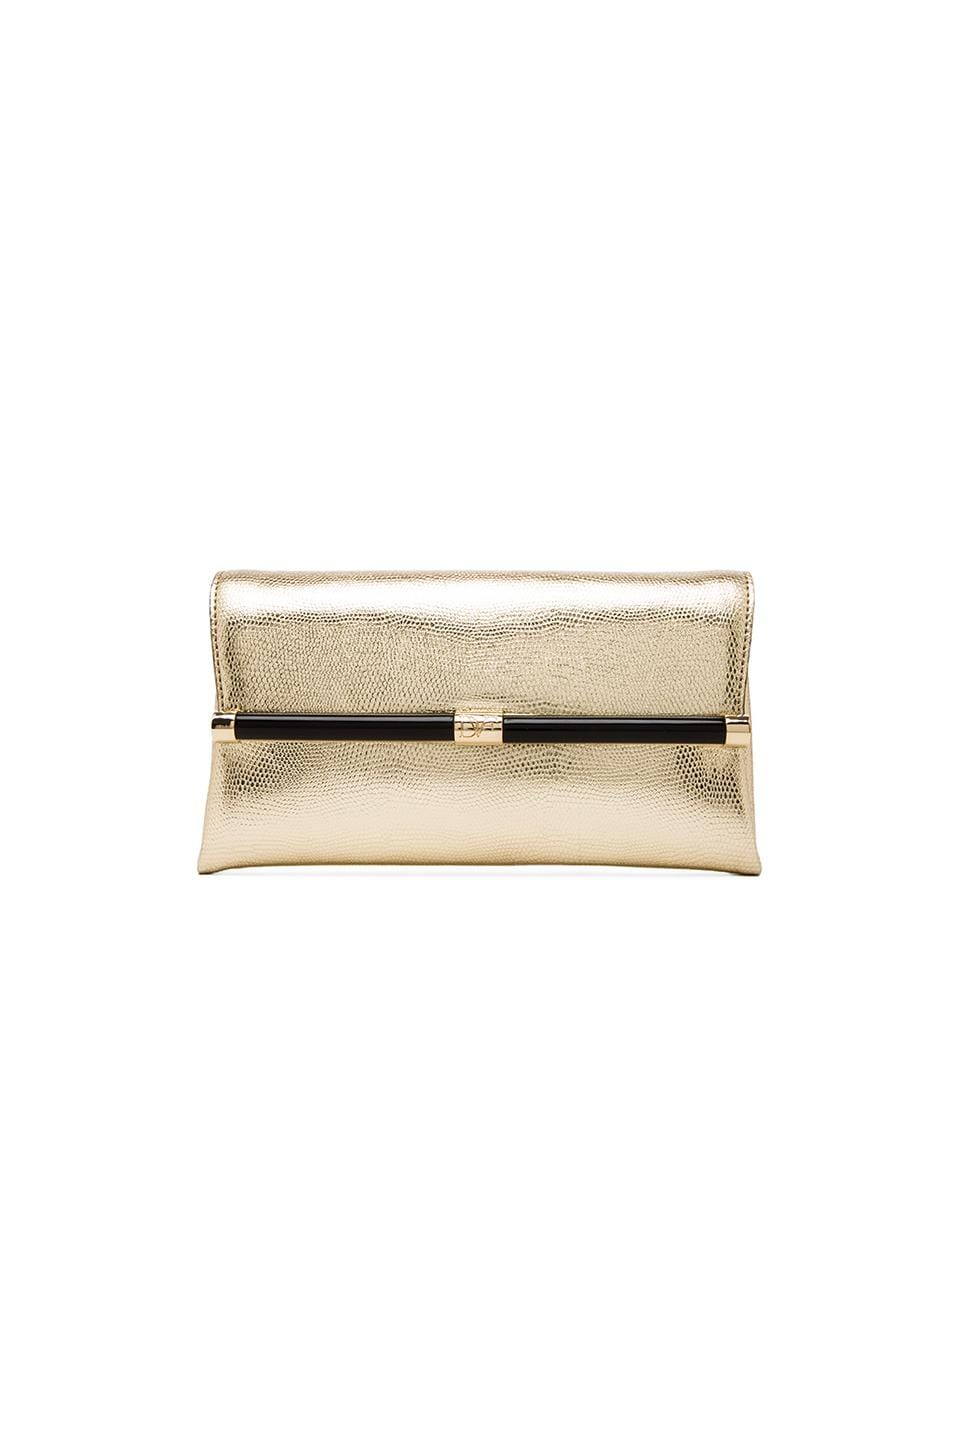 Diane von Furstenberg Envelope Clutch in Gold